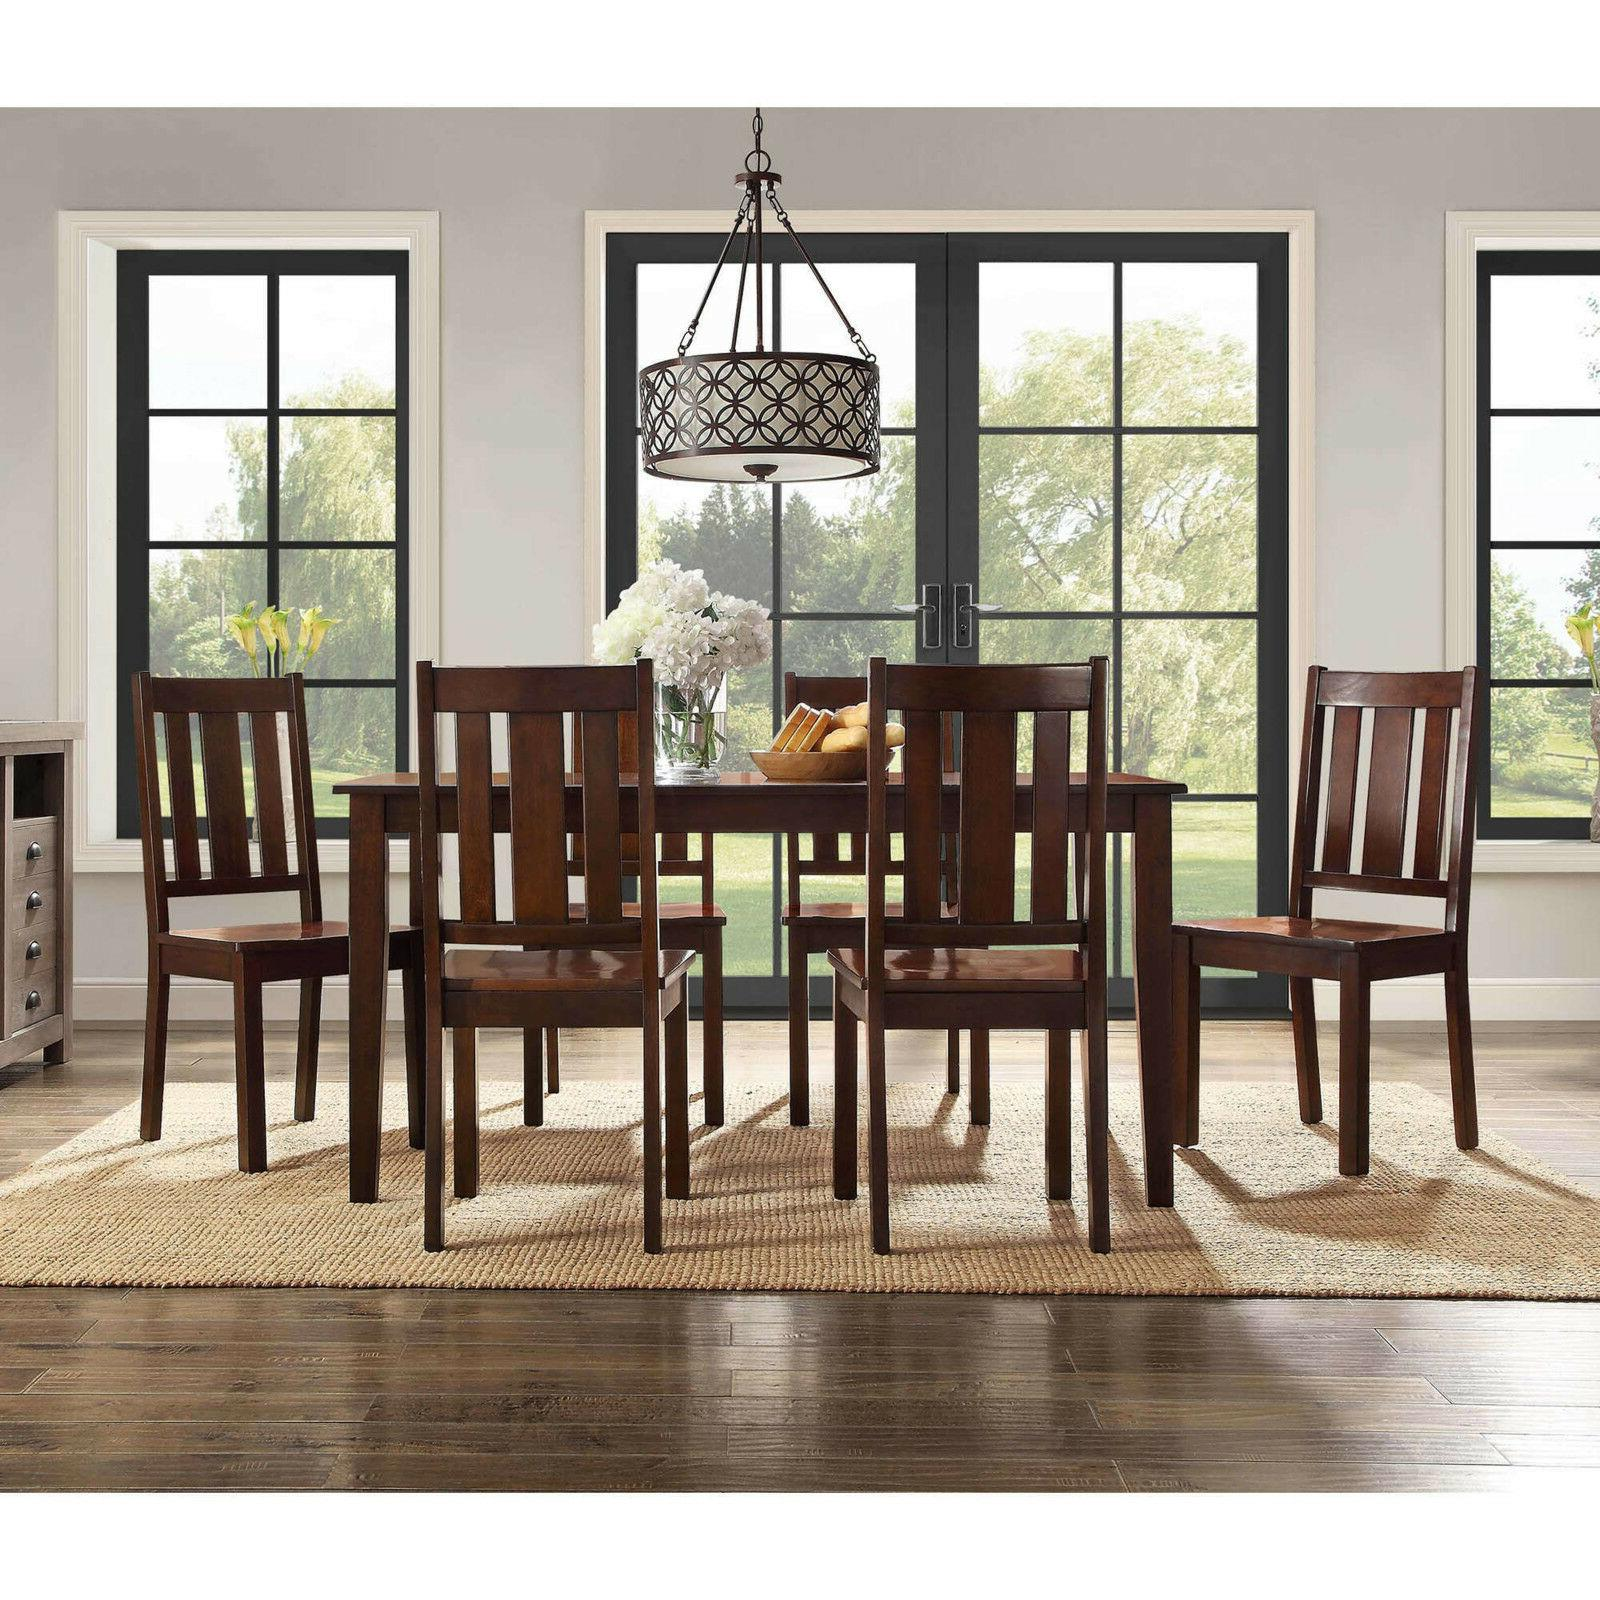 Better Homes and Bankston Table Espresso Color